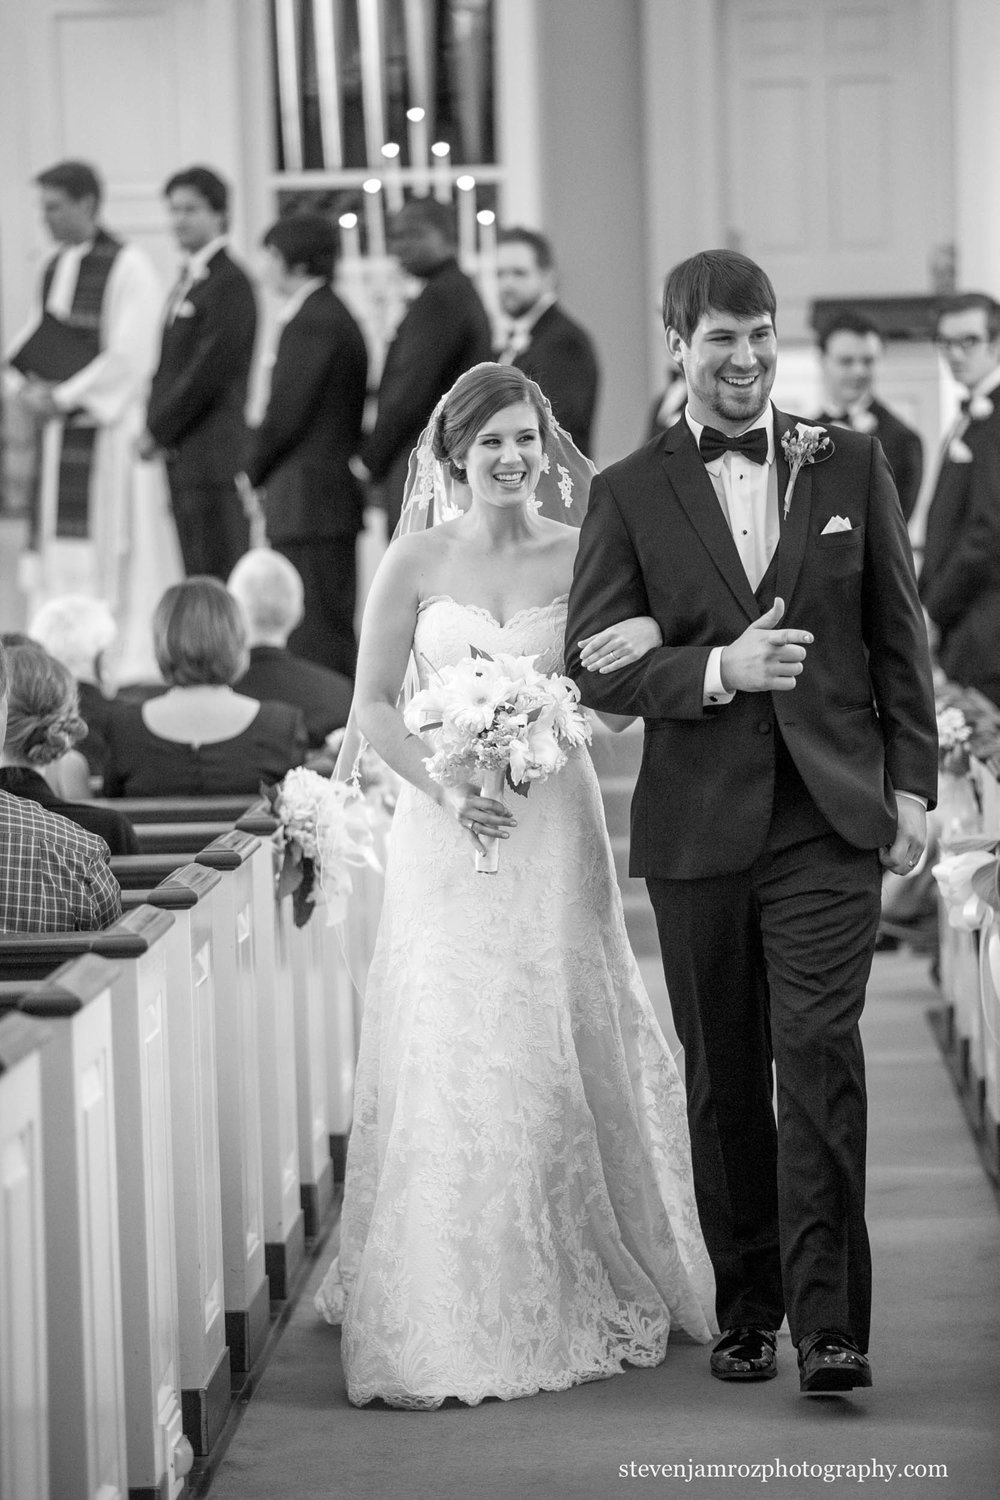 jones-chapel-meredith-recessional-wedding-steven-jamroz-photography-0740.jpg